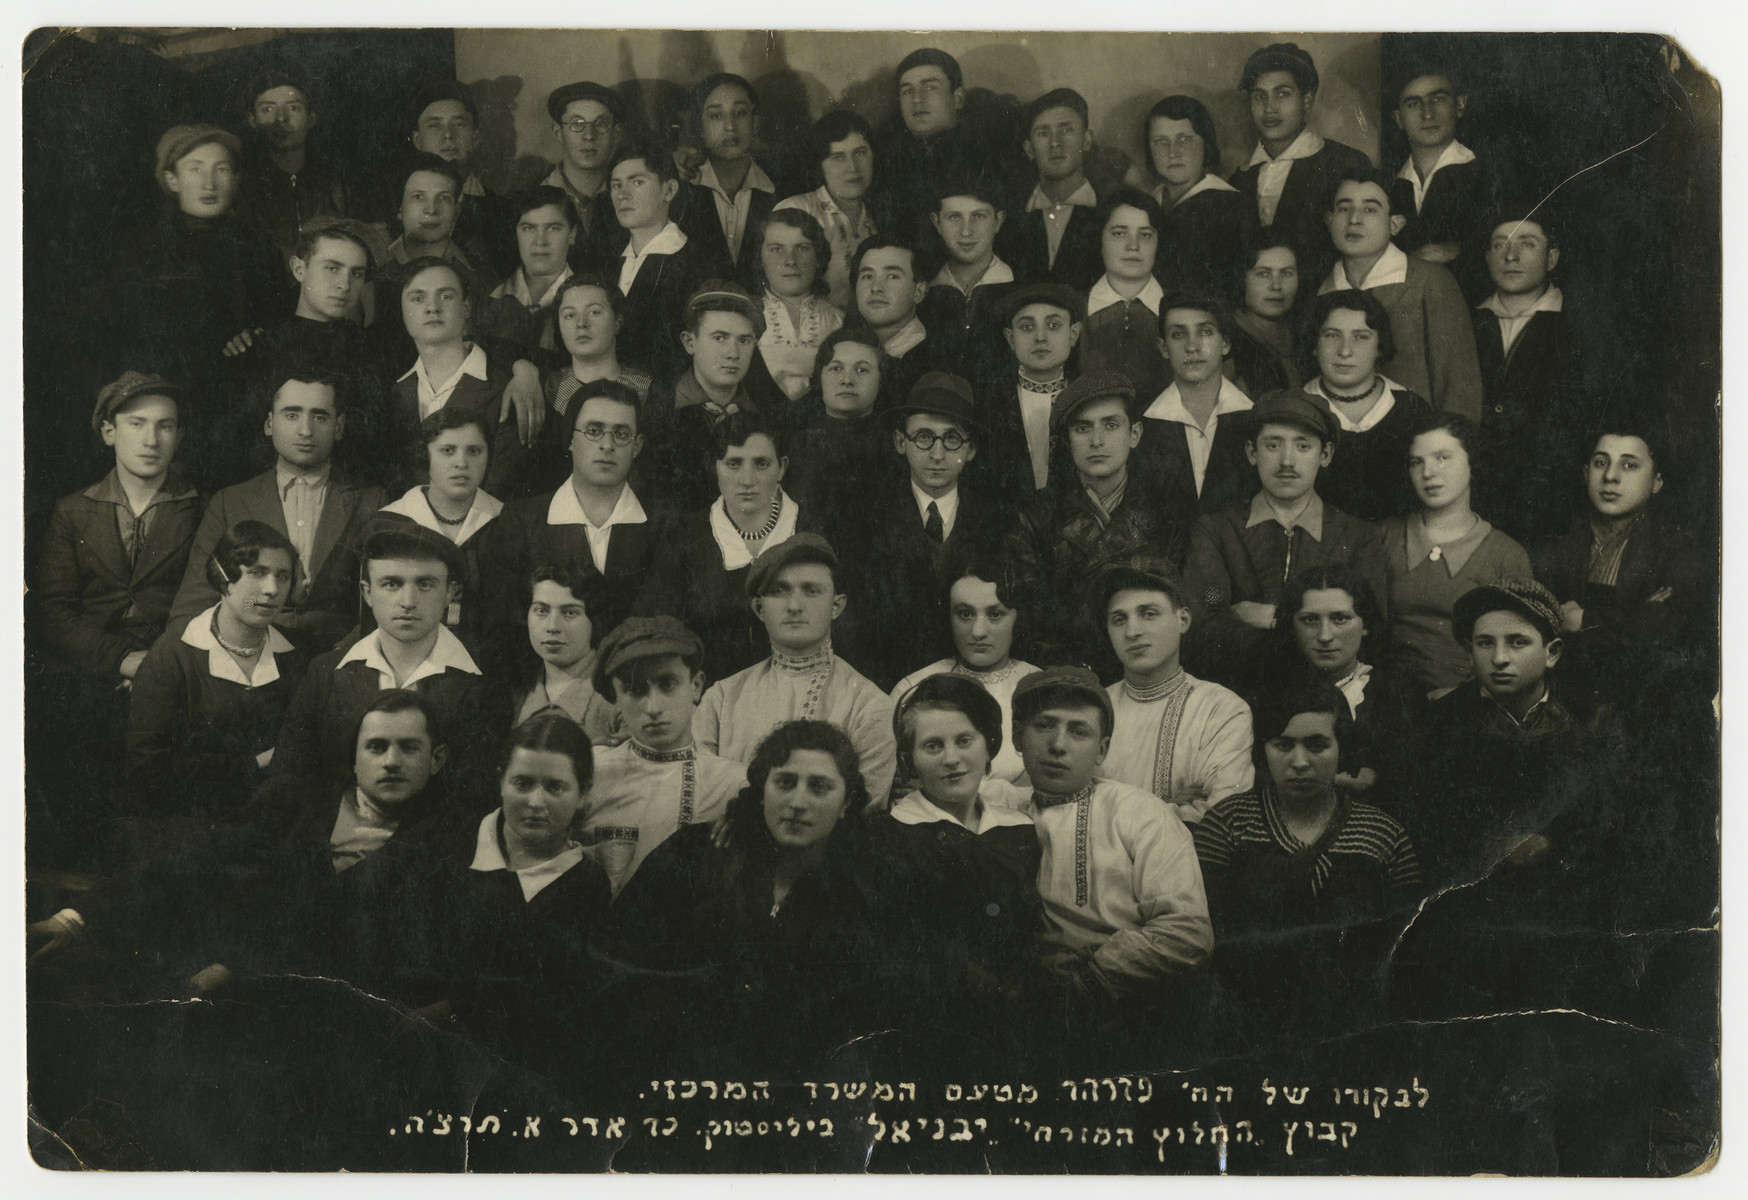 Asher Fetherhar (later Zidon) poses with members of the Hechalutz Mizrachi hachshara Yavniel in Bialystok.